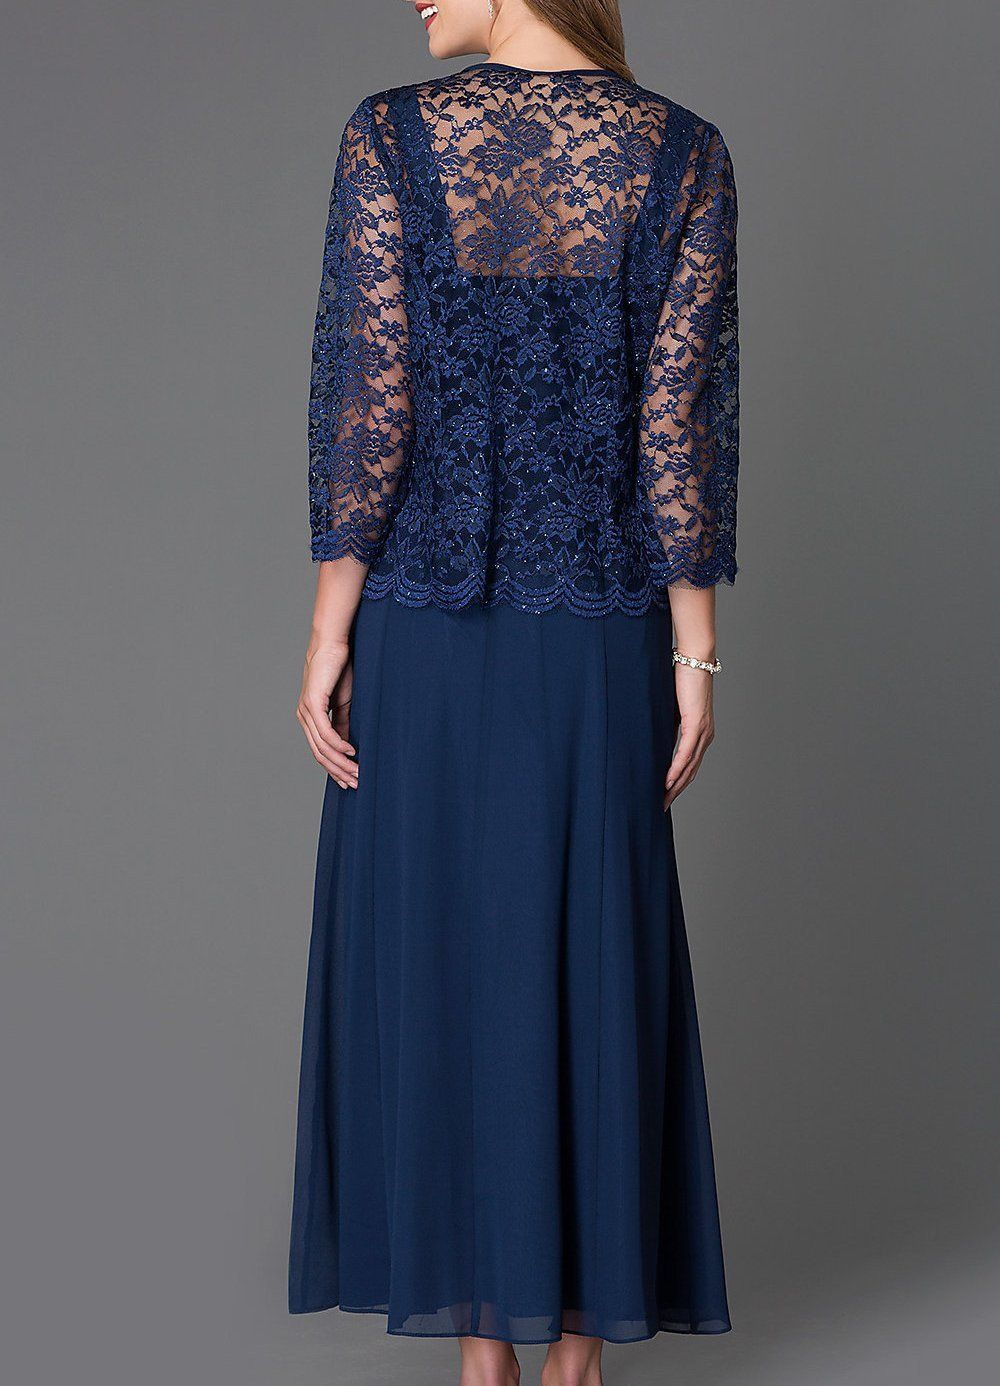 9a637f4668c Long Chiffon Navy Blue Mother of Groom Dress 3 4 length Long Sleeve ...